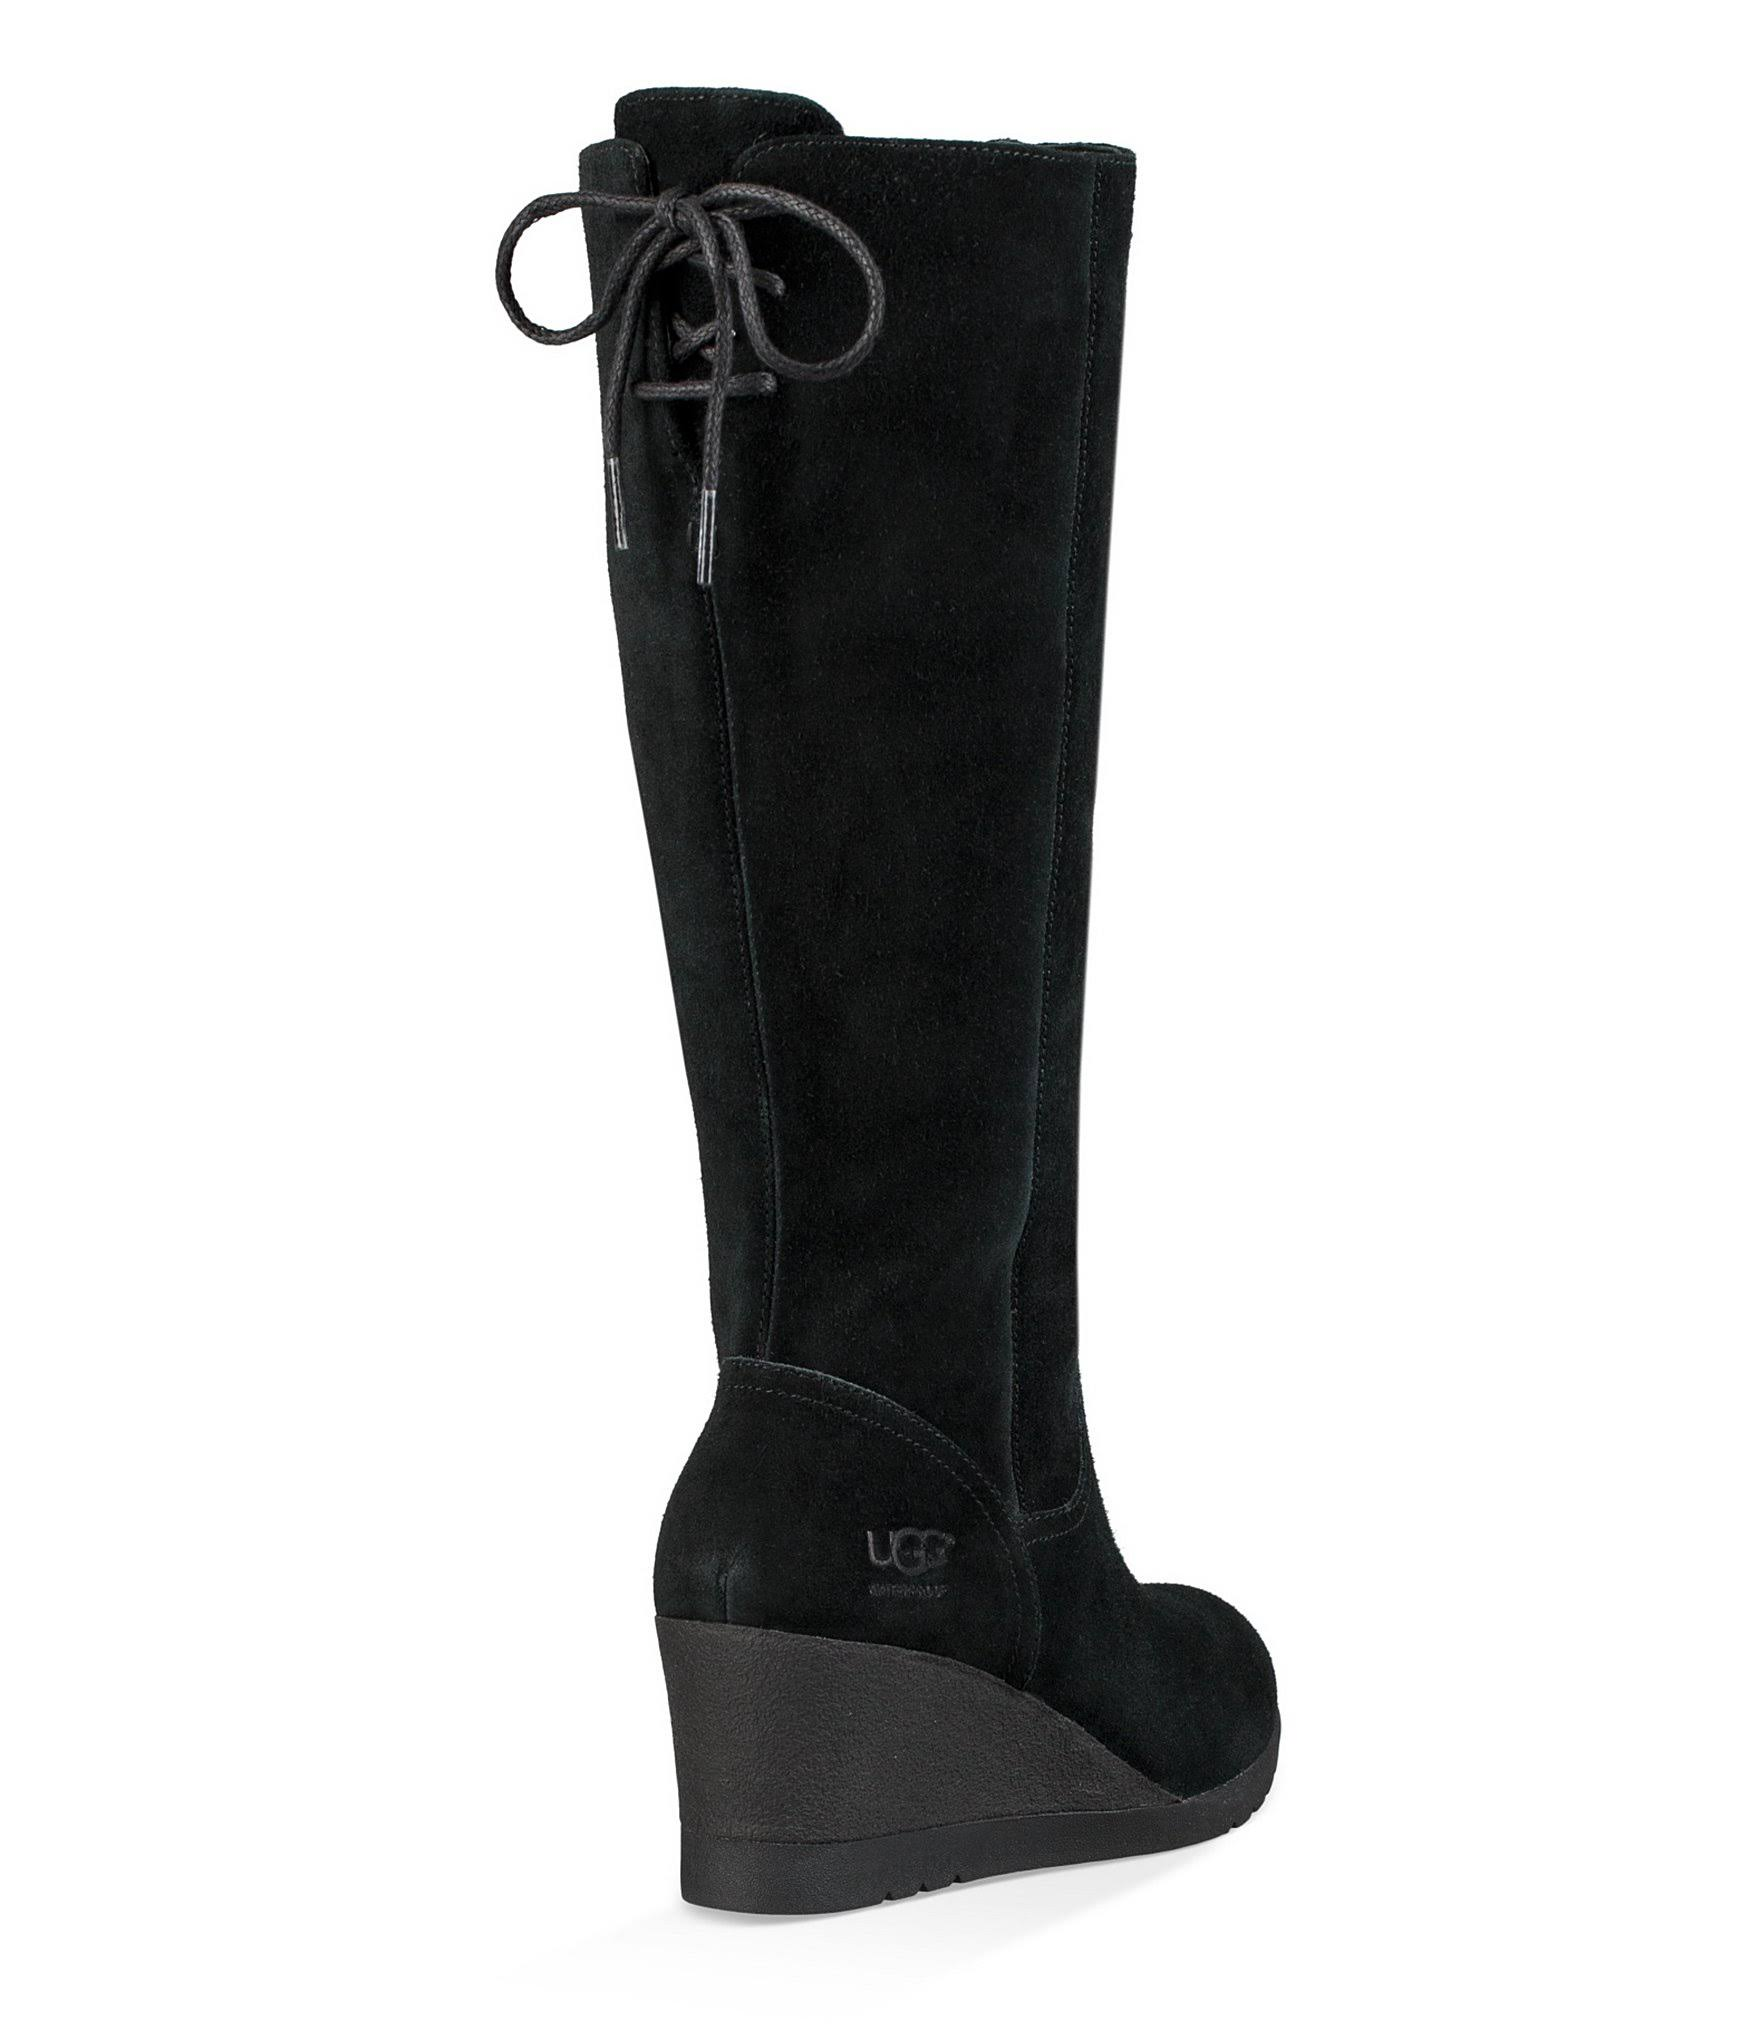 Tall Ugg Waterproof Boots 5m Black 9 Wedge Dawna Suede zRqaO